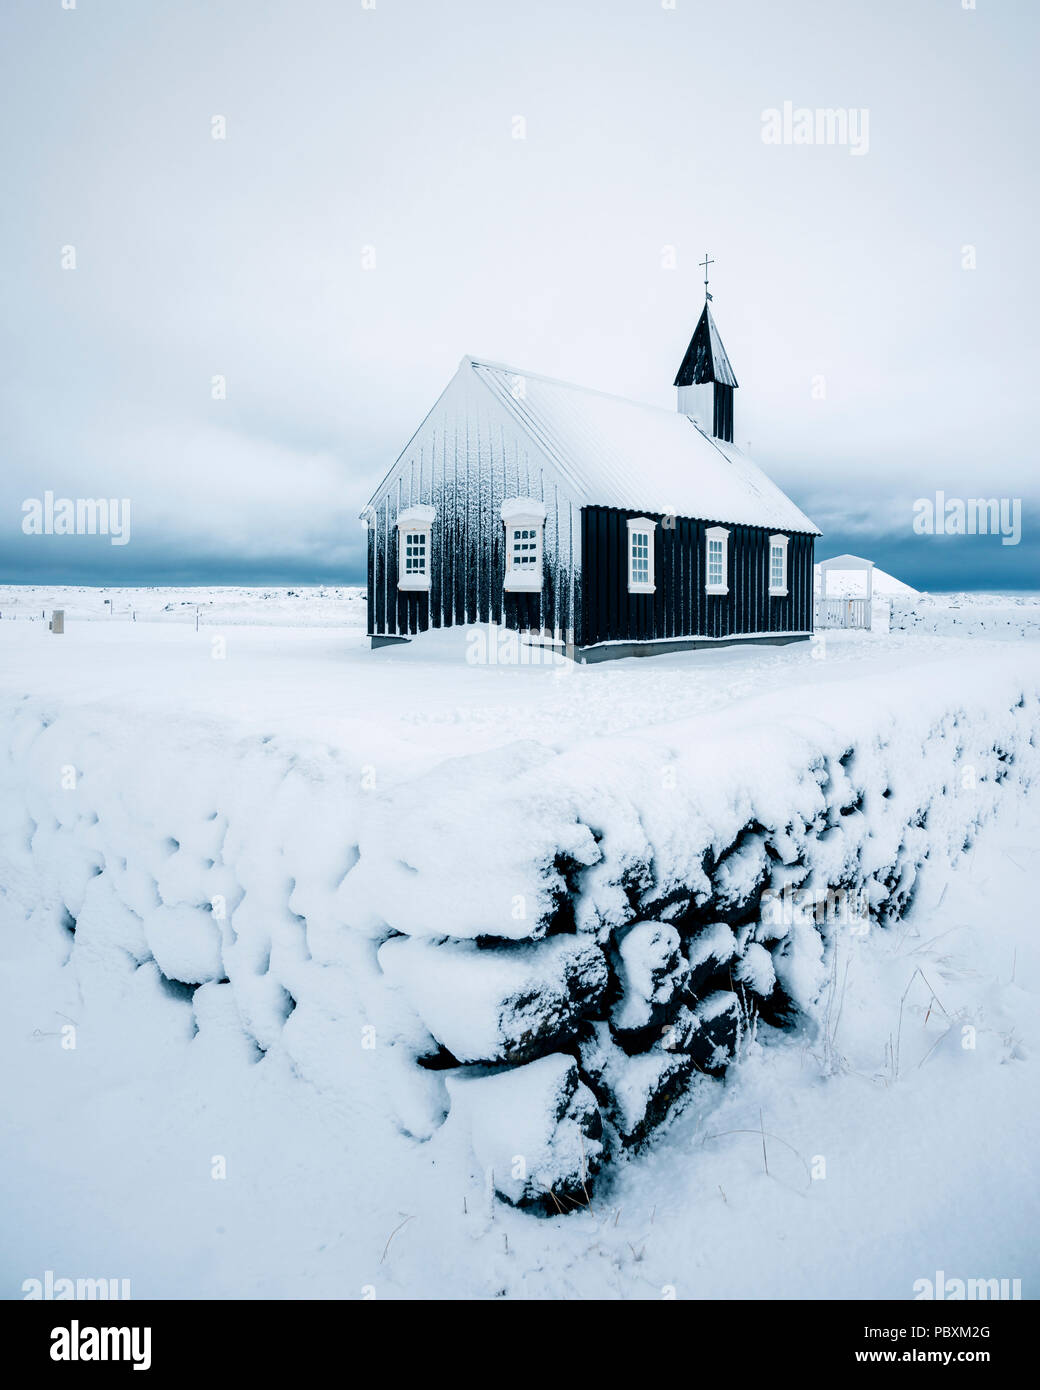 Budir Église, dans l'Europe de l'Islande, de Snæfellsnes snow Photo Stock